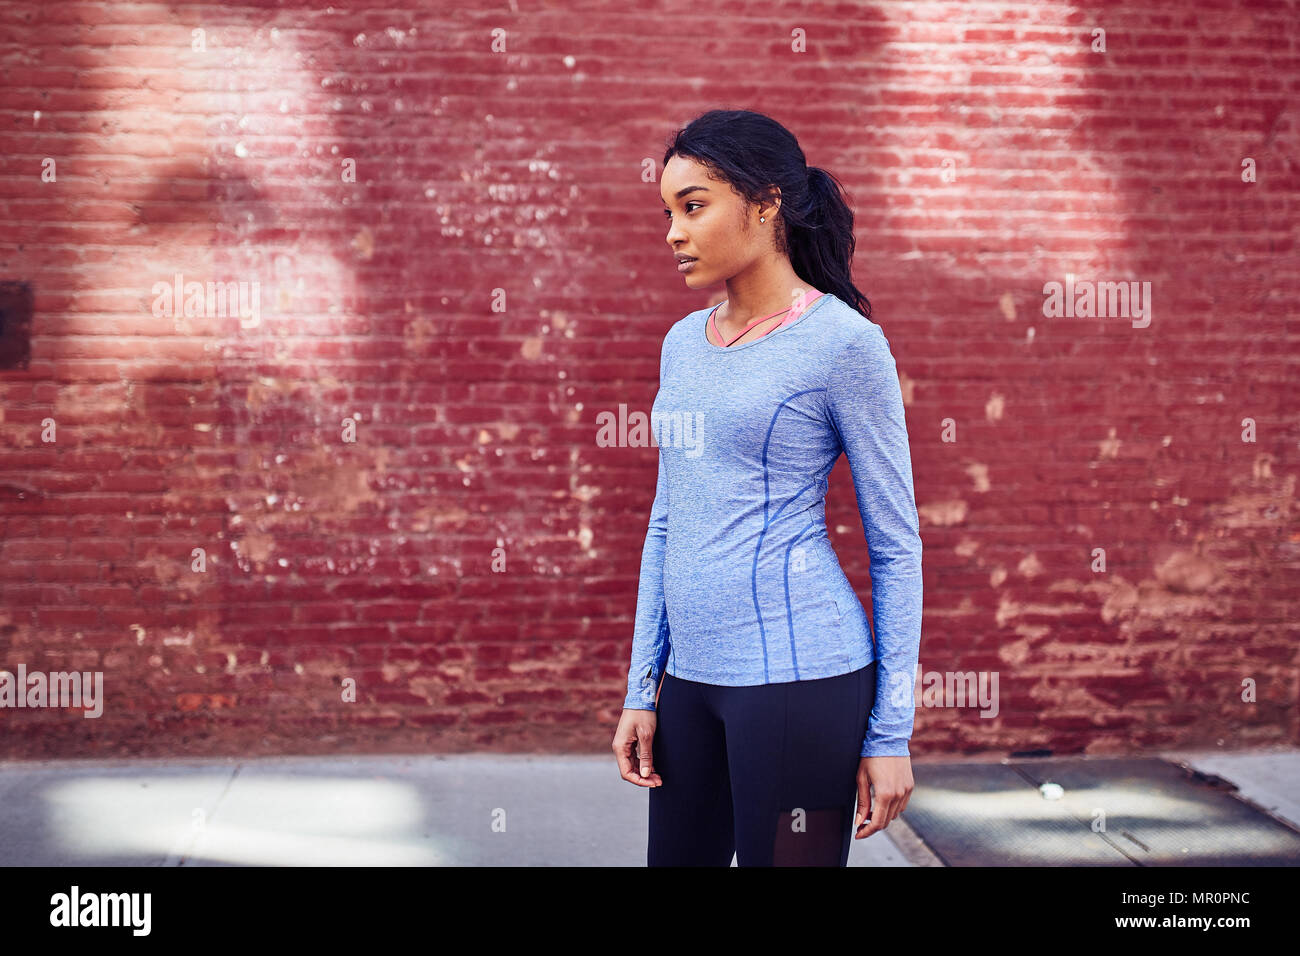 Black woman rests after running - Stock Image